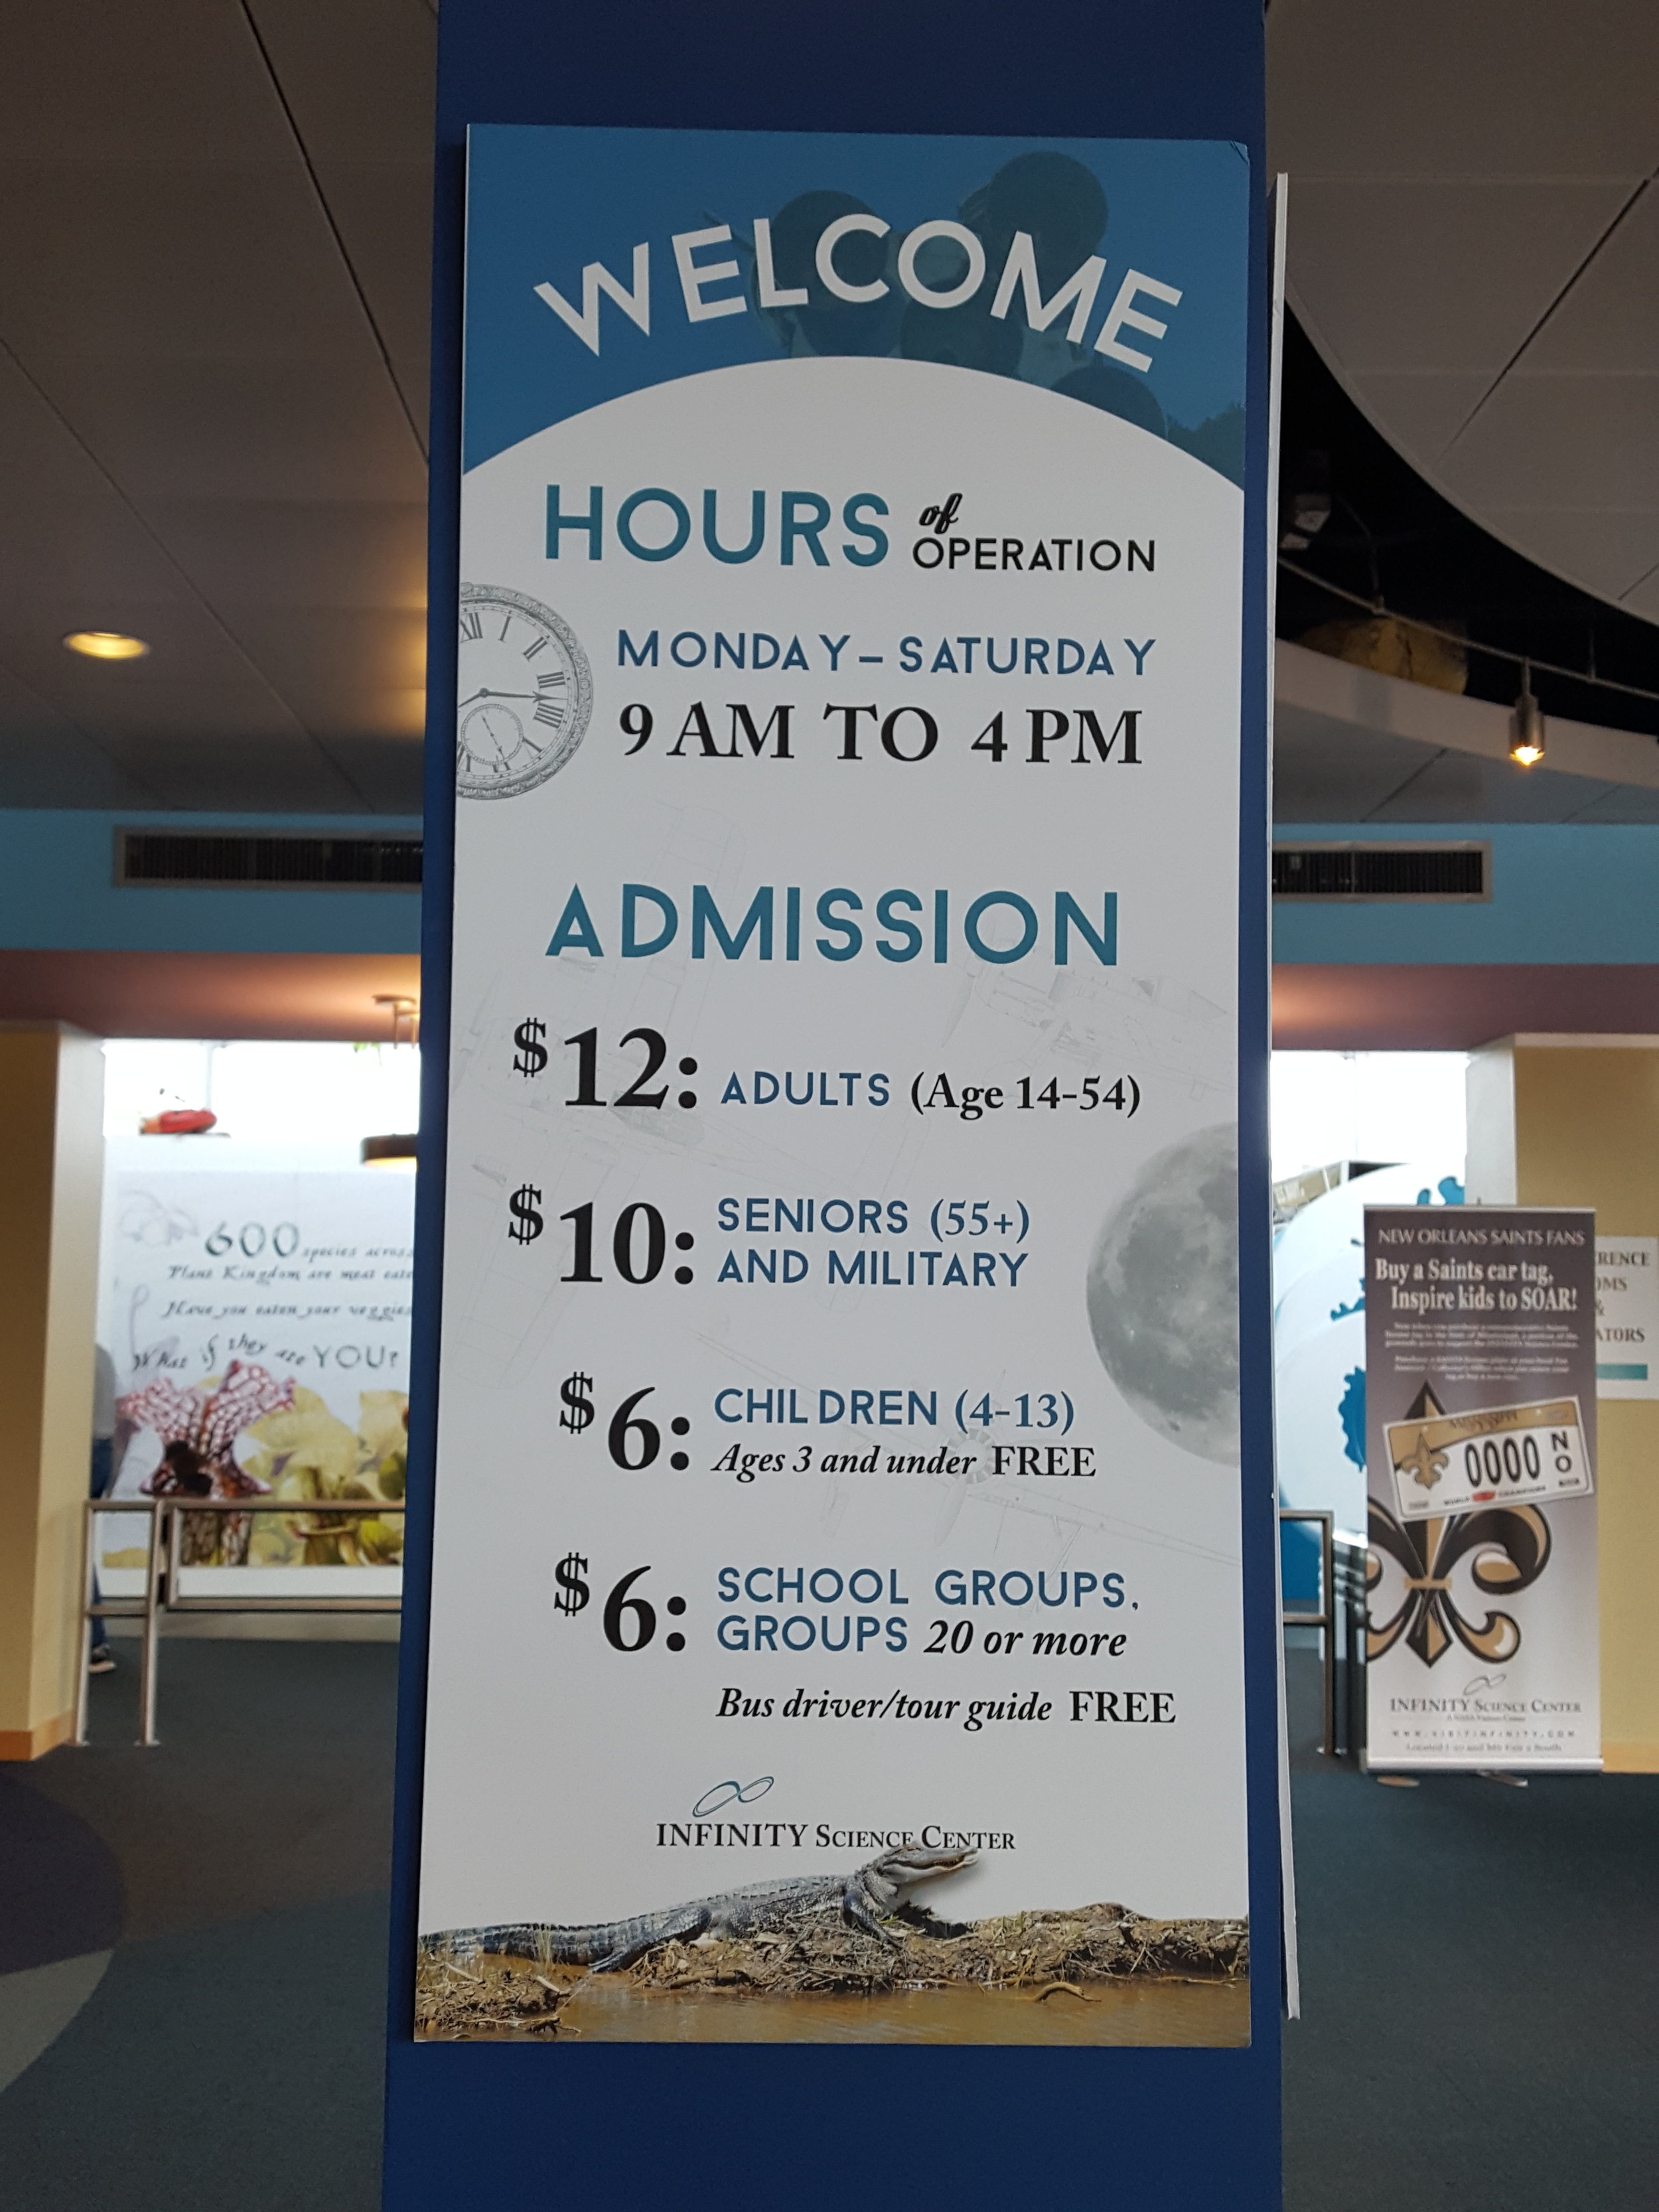 Cost of admission to the INFINITY Science Center